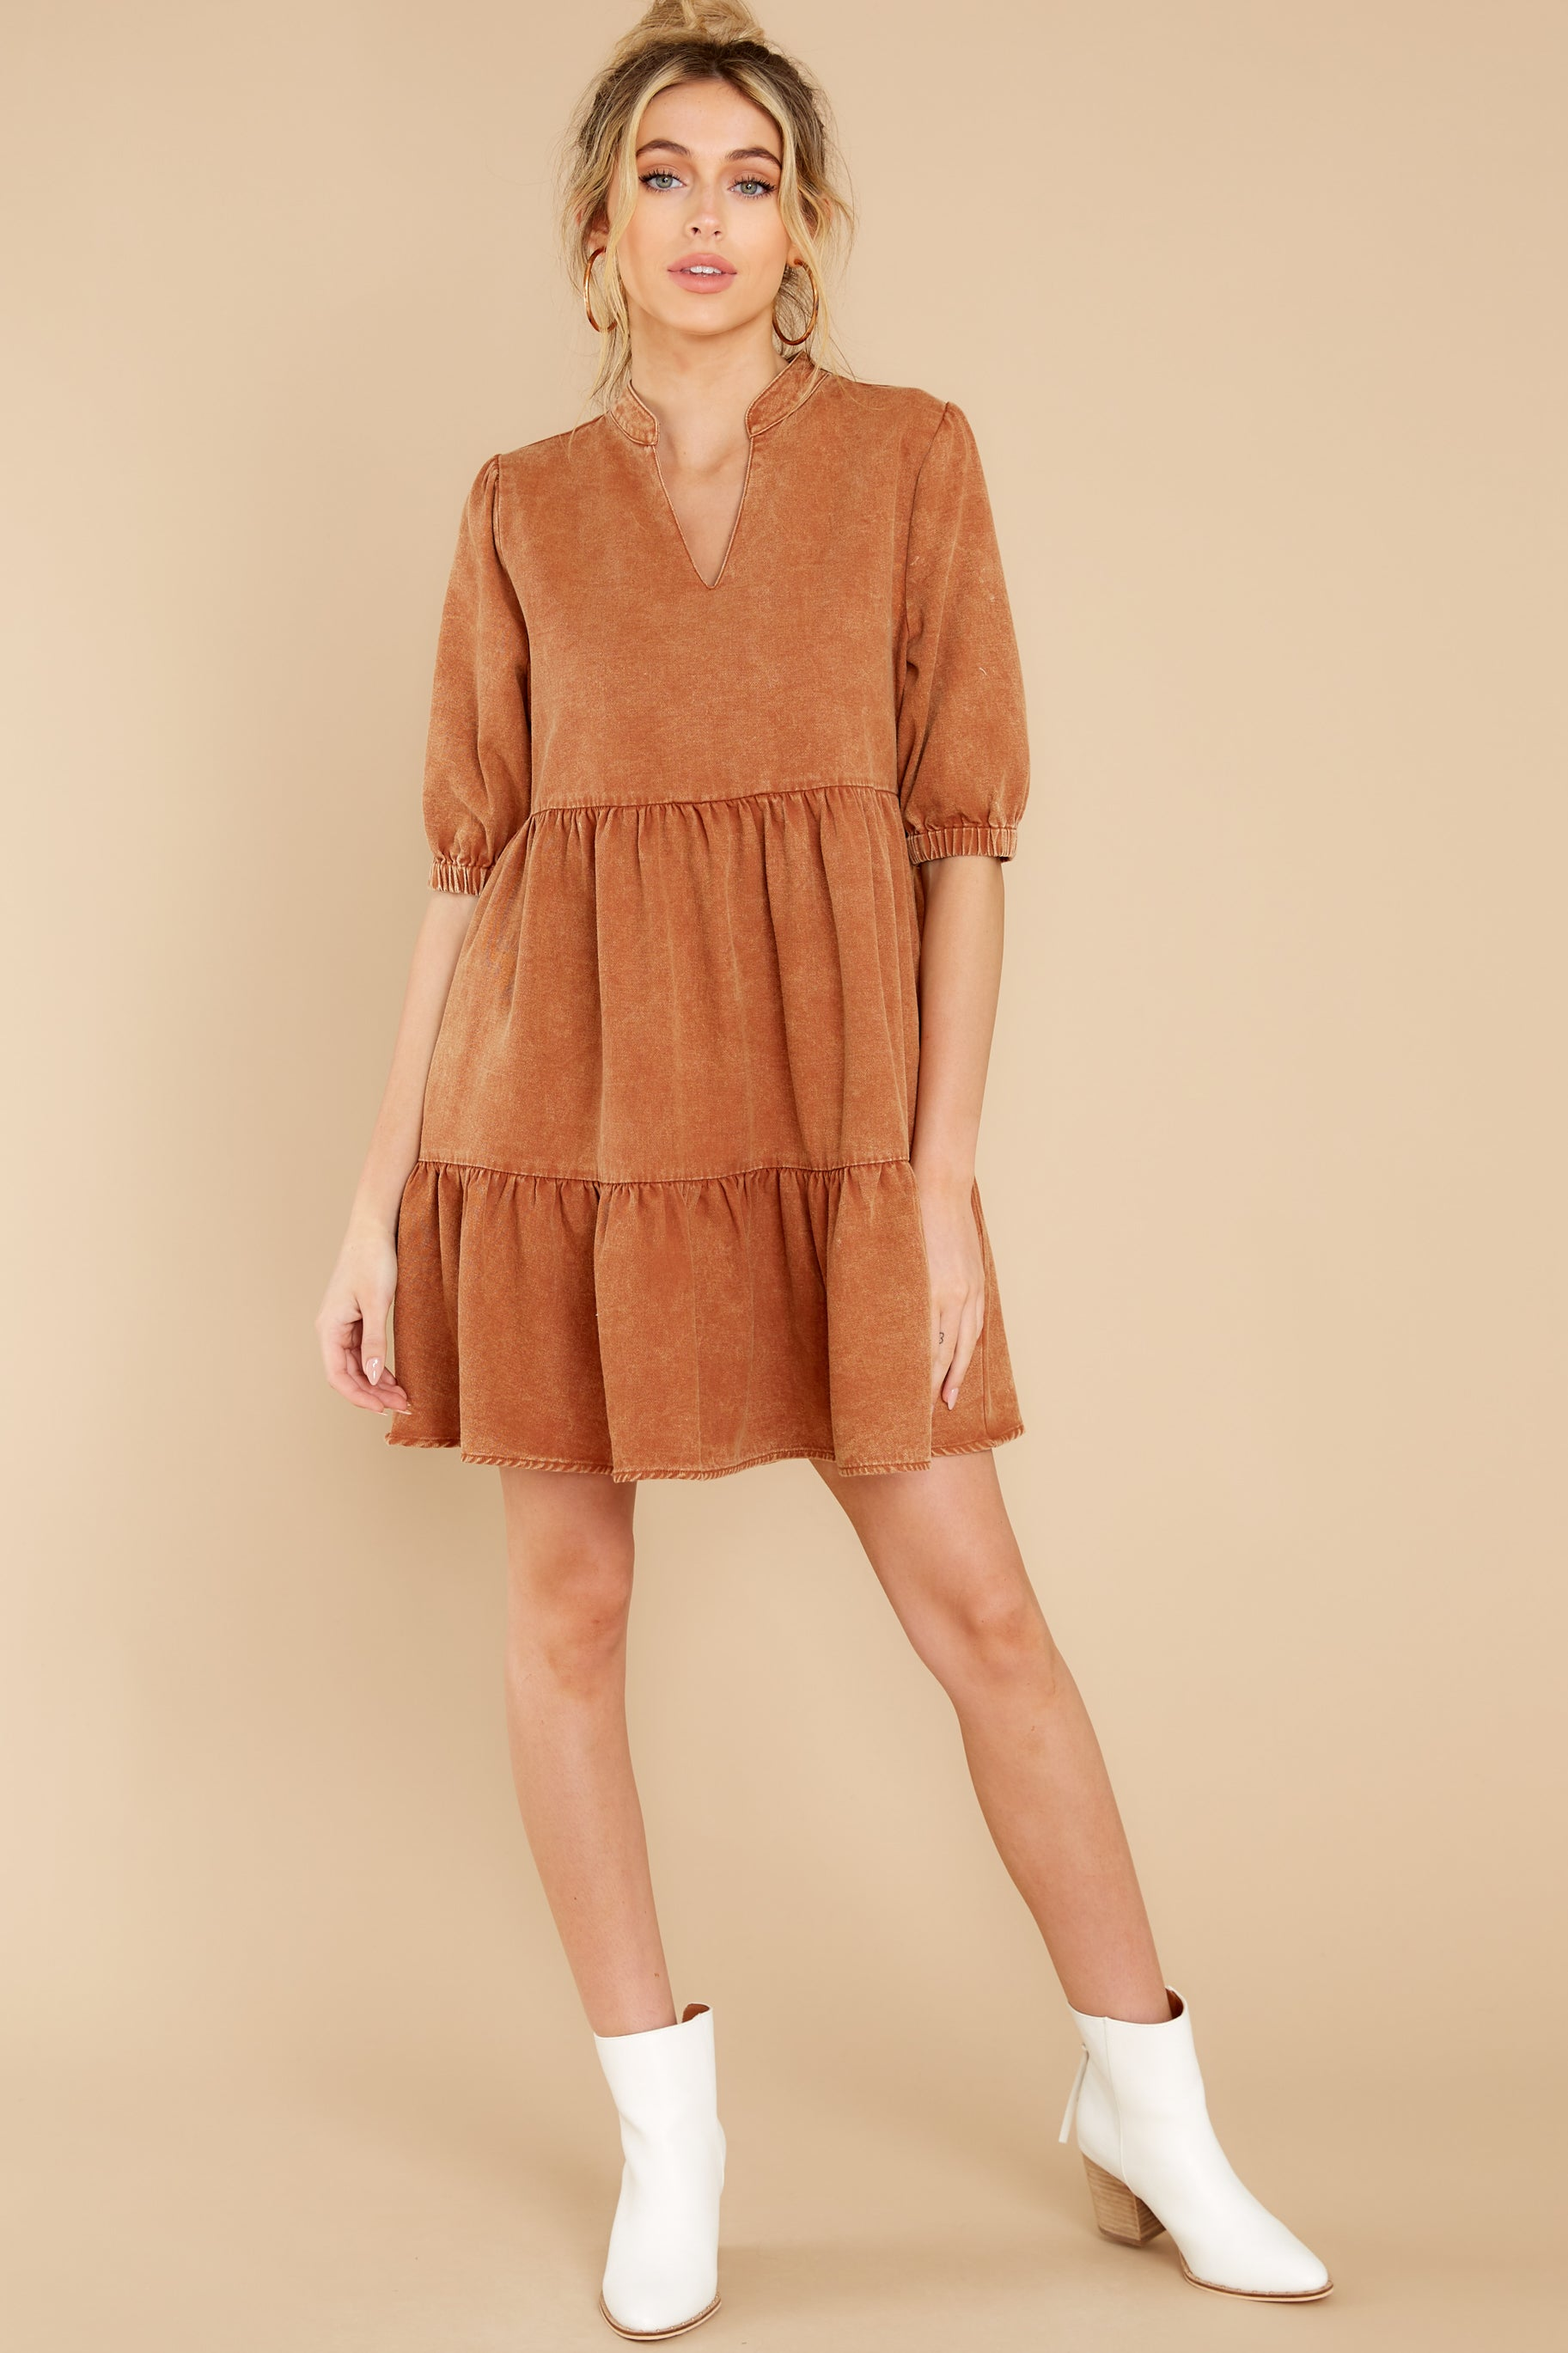 3 Not So Basic Caramel Brown Dress at reddress.com